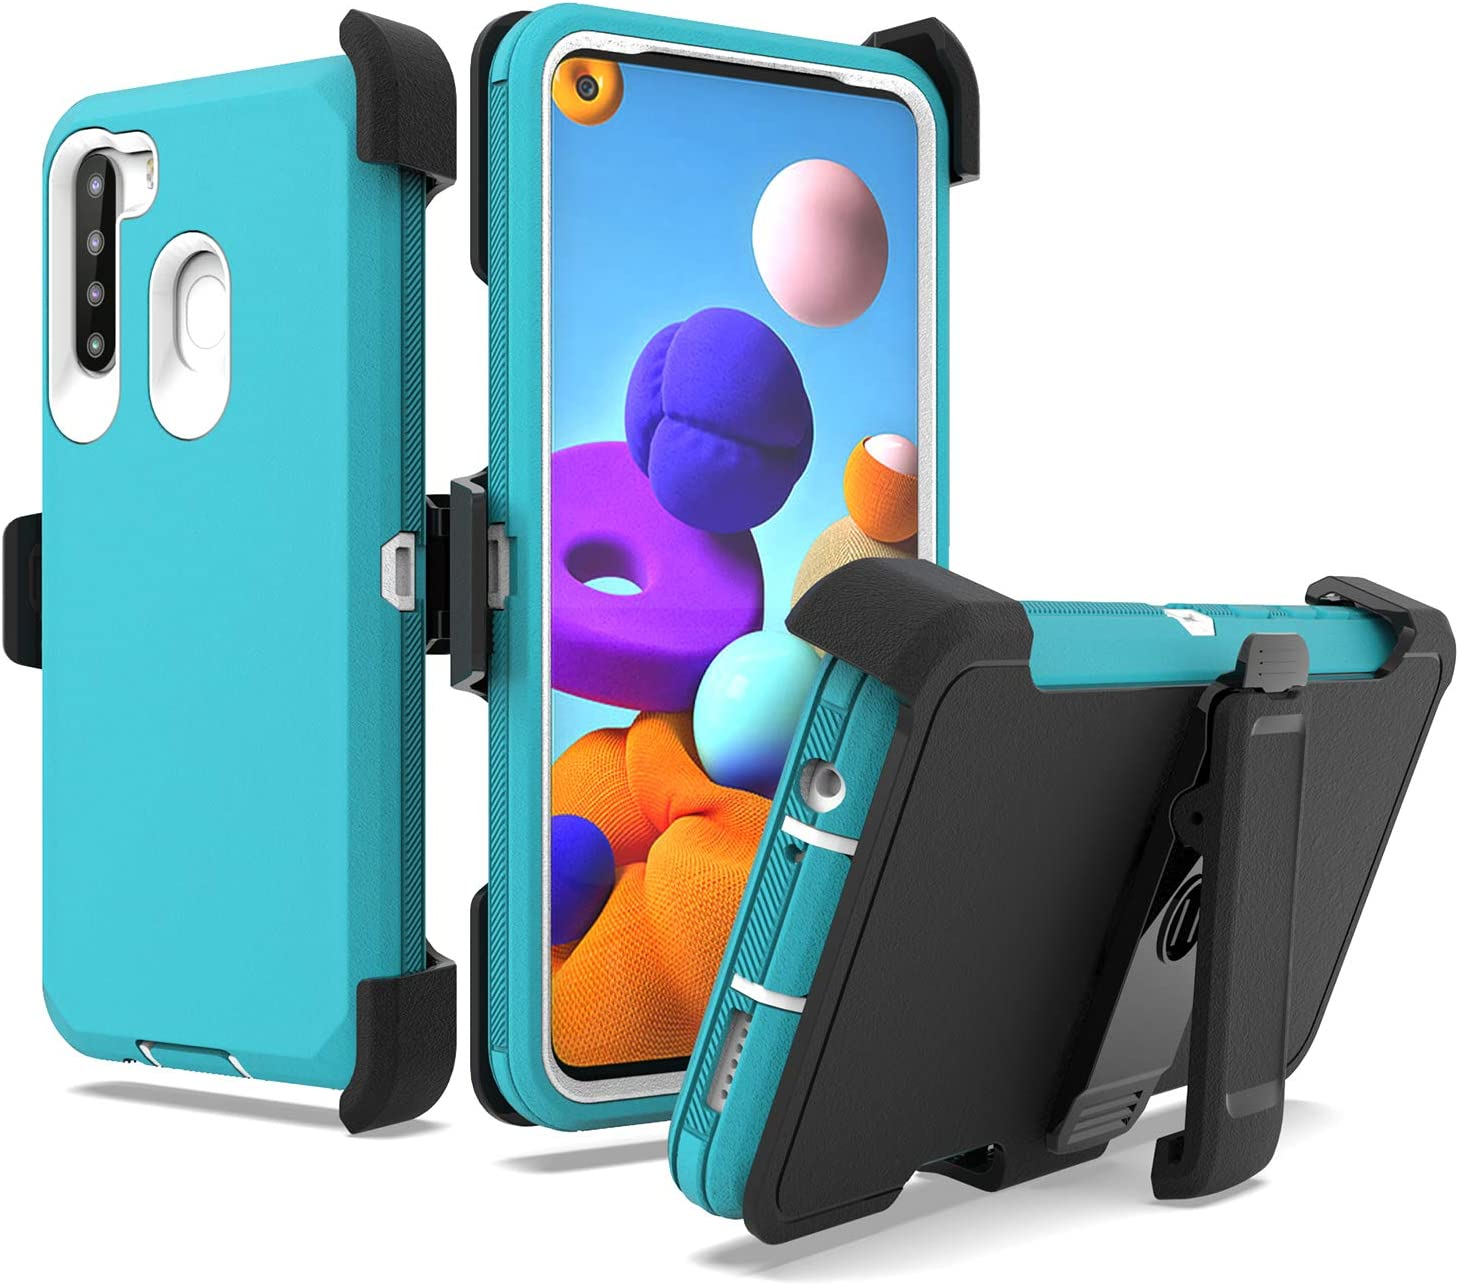 UNC Pro 3 in 1 Belt Clip Holster Cell Phone Case for Samsung Galaxy A21, Heavy Duty Hybrid Shockproof Bumper Case with Kickstand, Turquoise/White